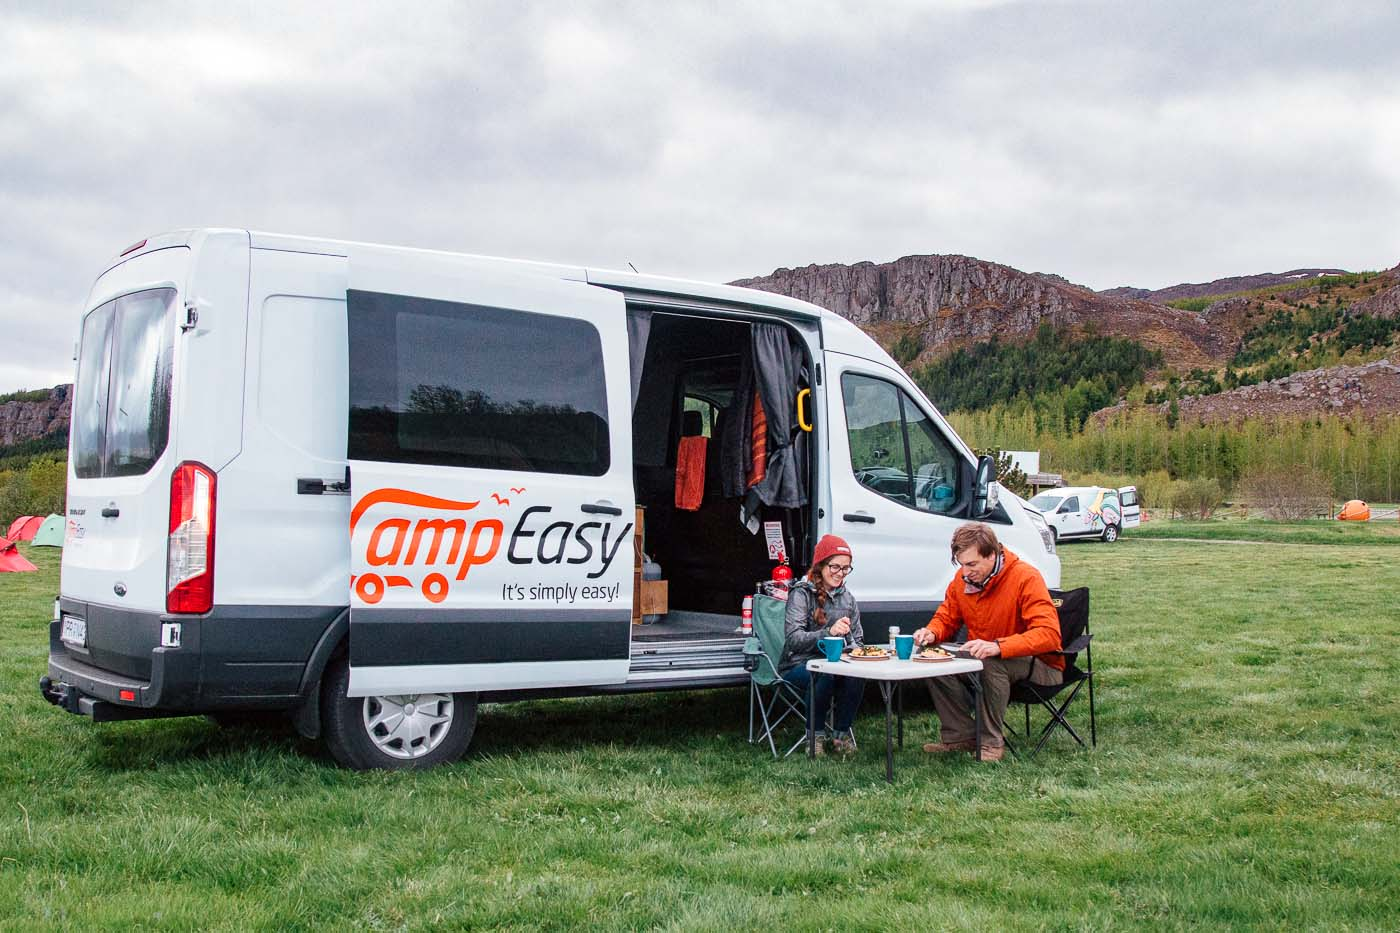 A couple eating a meal in front of a camper van